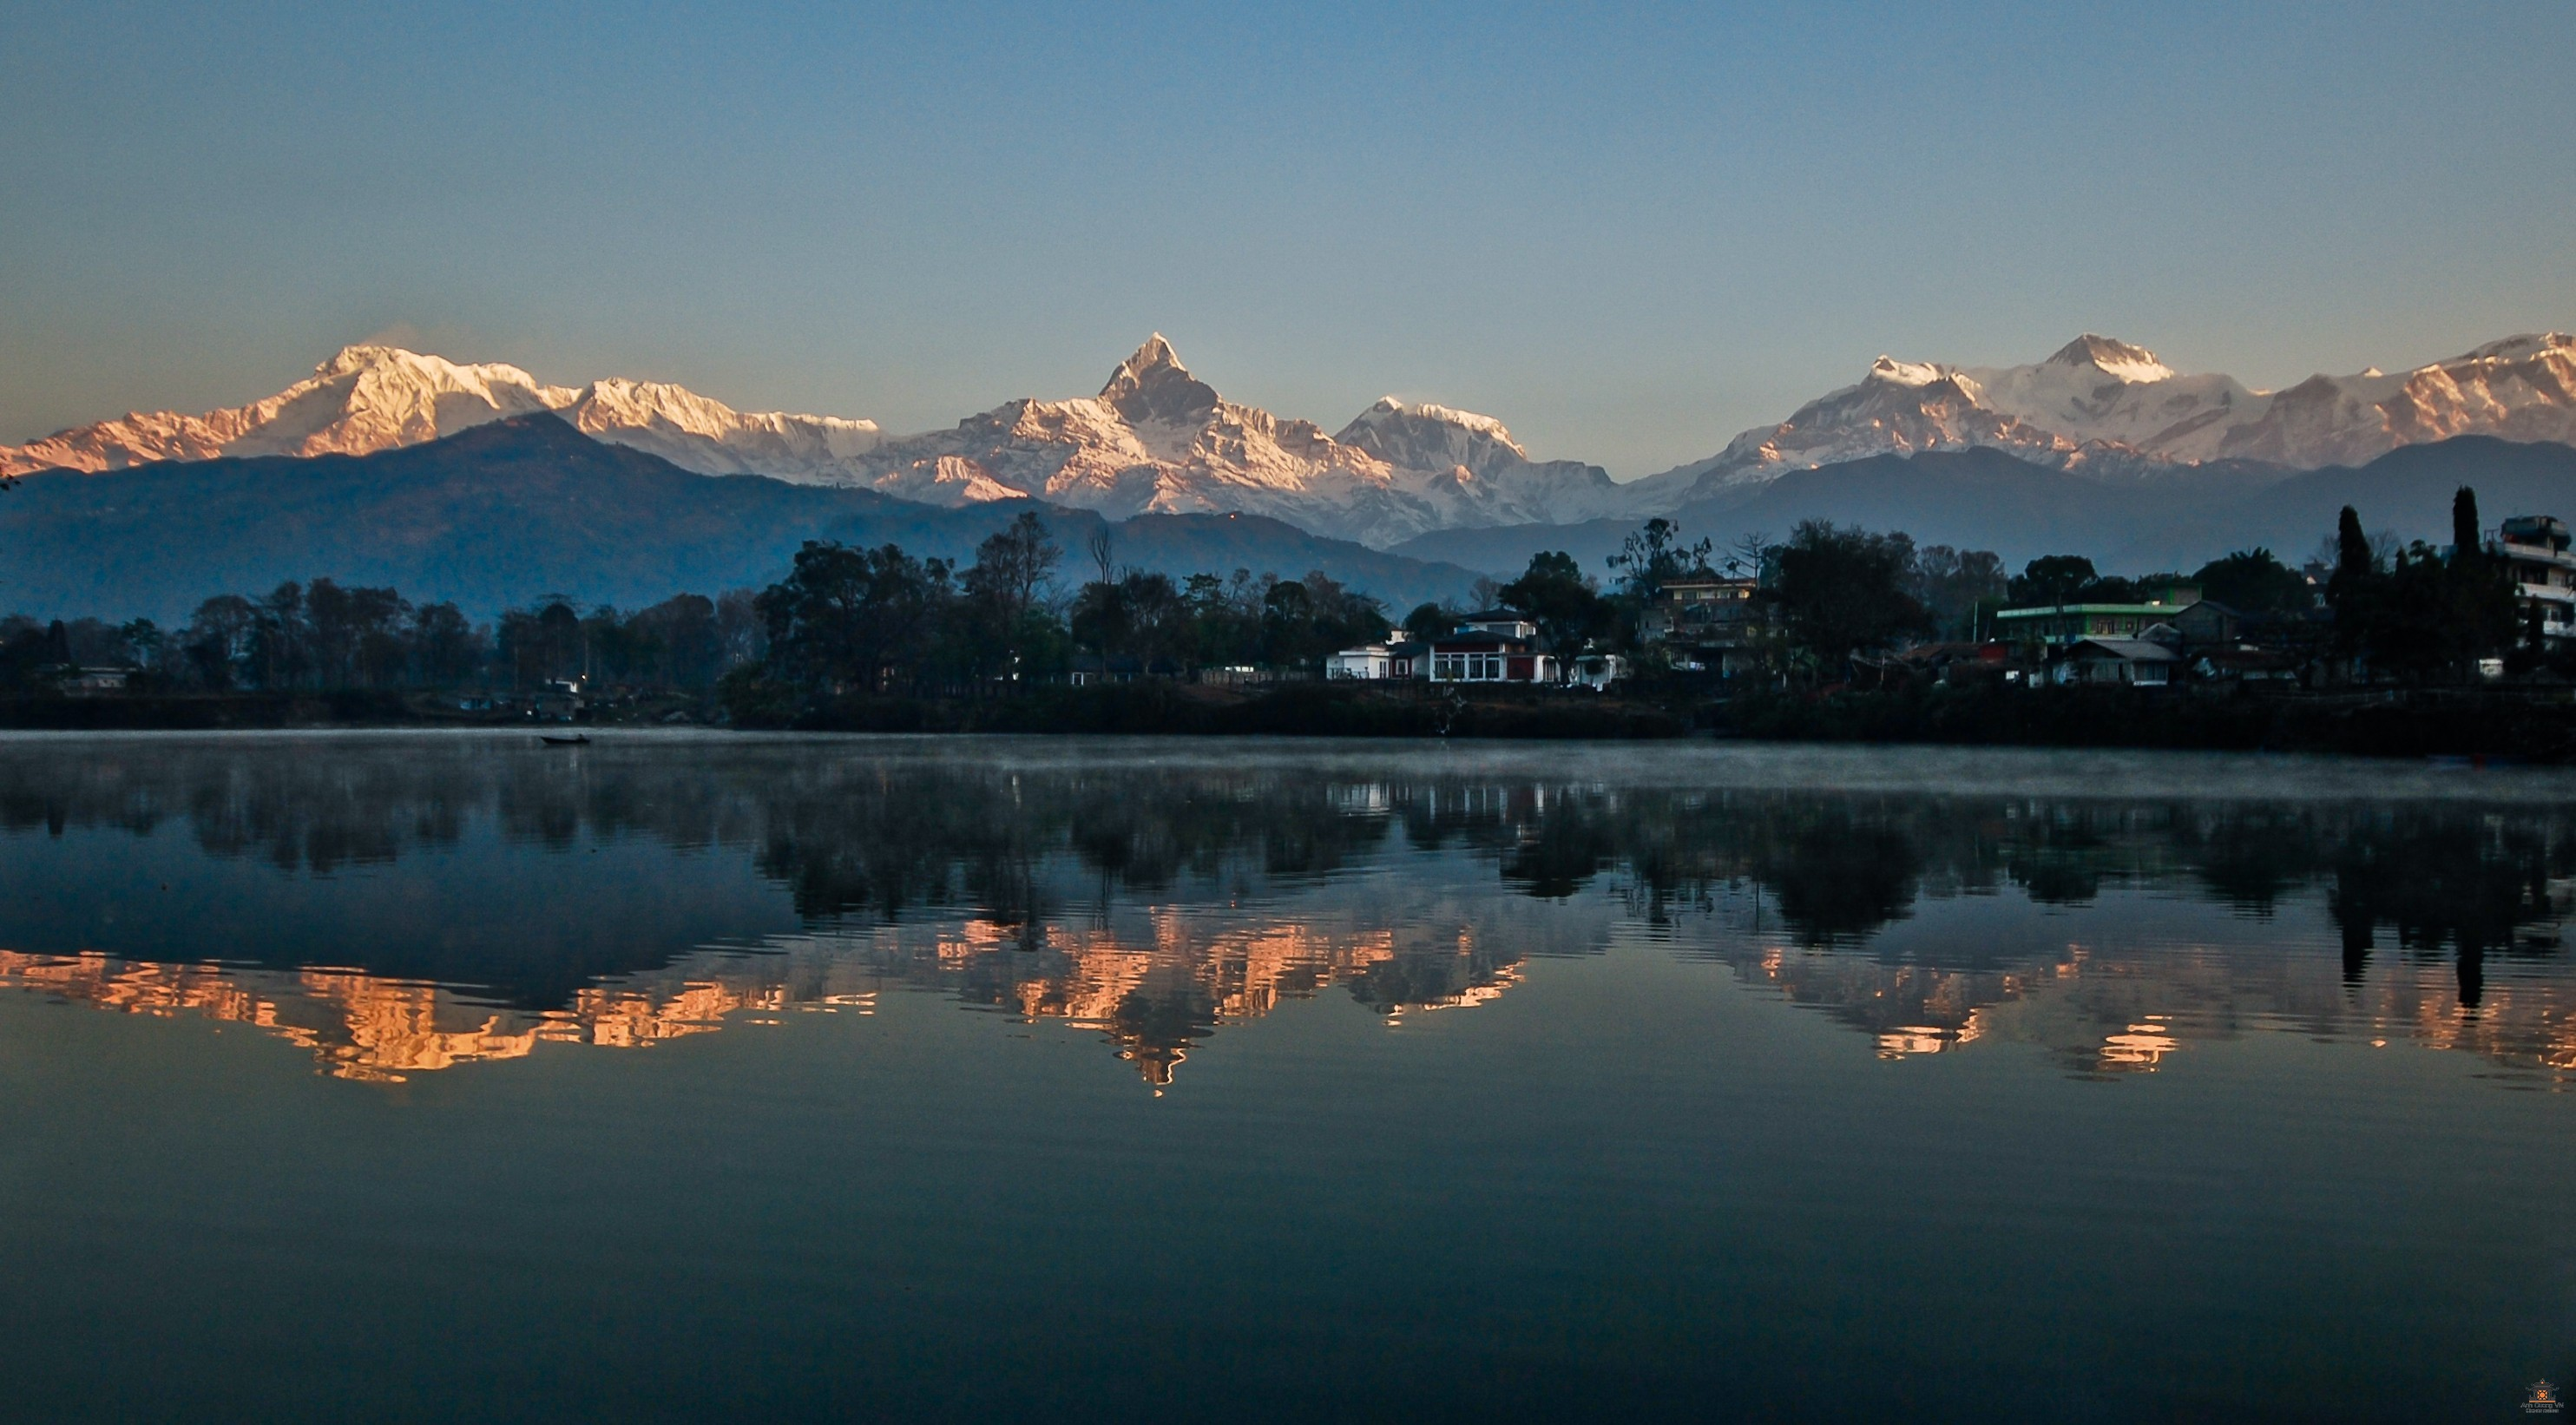 pokhara tour Pokhara tourism: tripadvisor has 68,622 reviews of pokhara hotels, attractions, and restaurants making it your best pokhara resource.